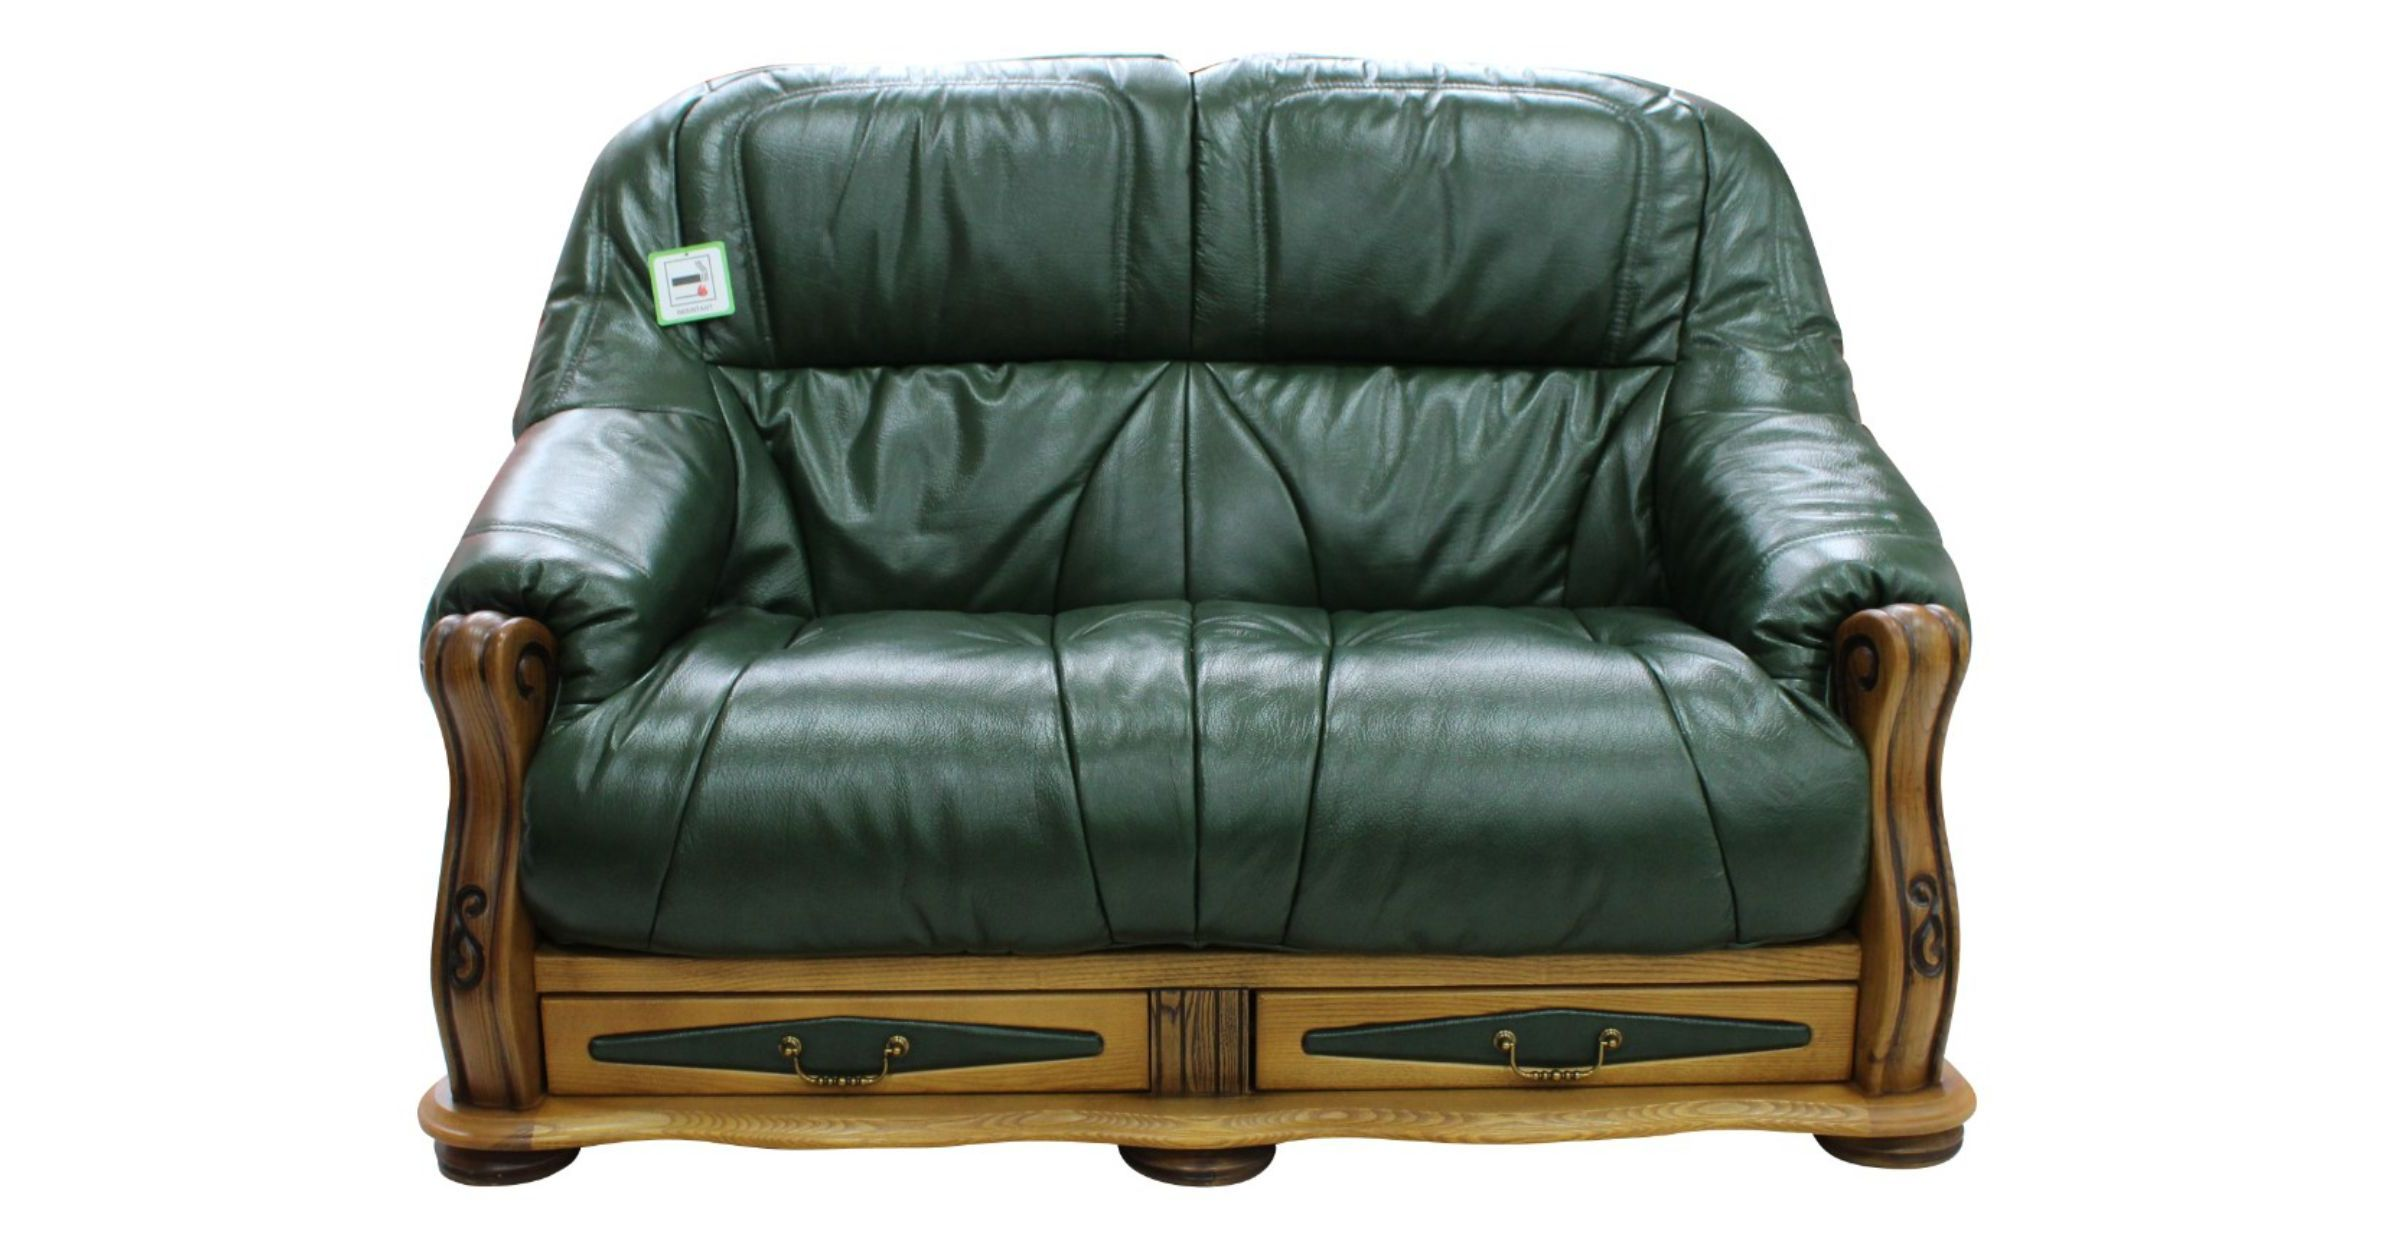 Chaise Victoria Belgium Storage Drawer Genuine Italian Leather 2 Seater